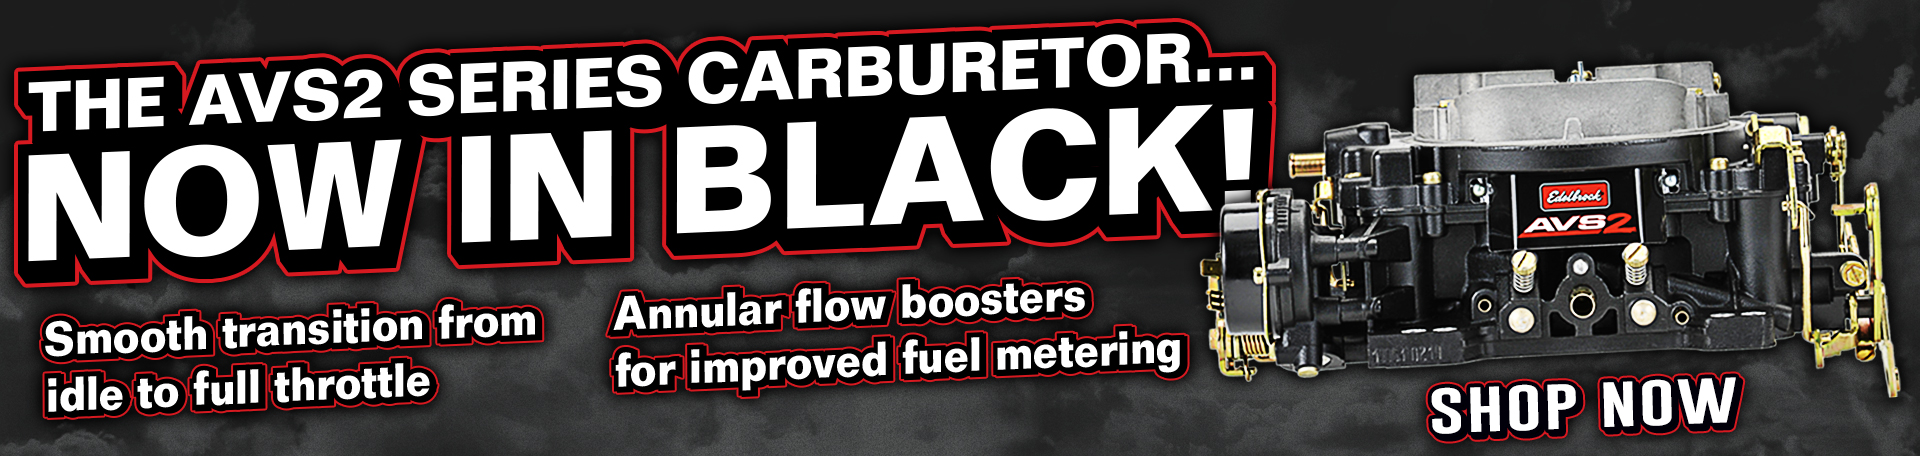 Edelbrock AVS2 Black Finish Carburetors - Learn More!